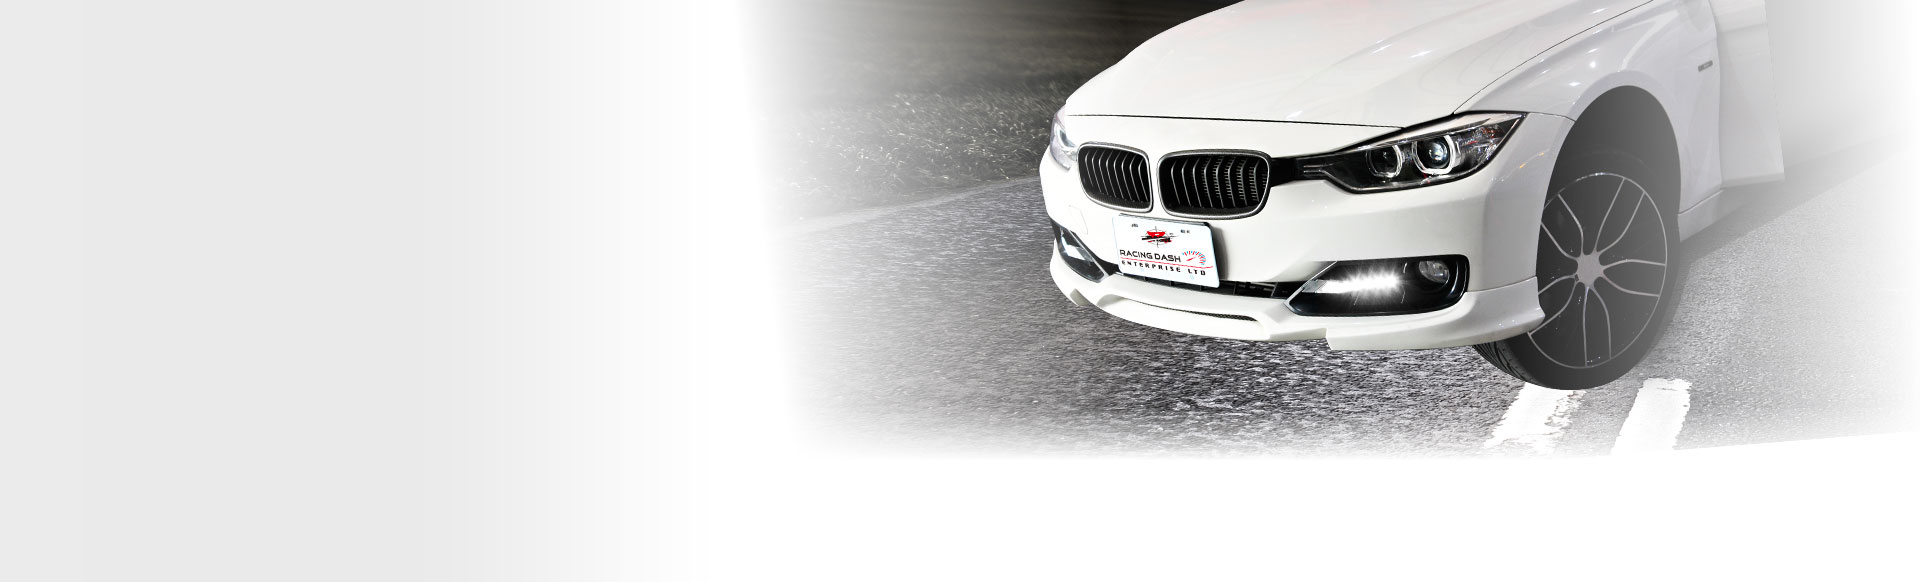 LED Daytime Running Light for F30